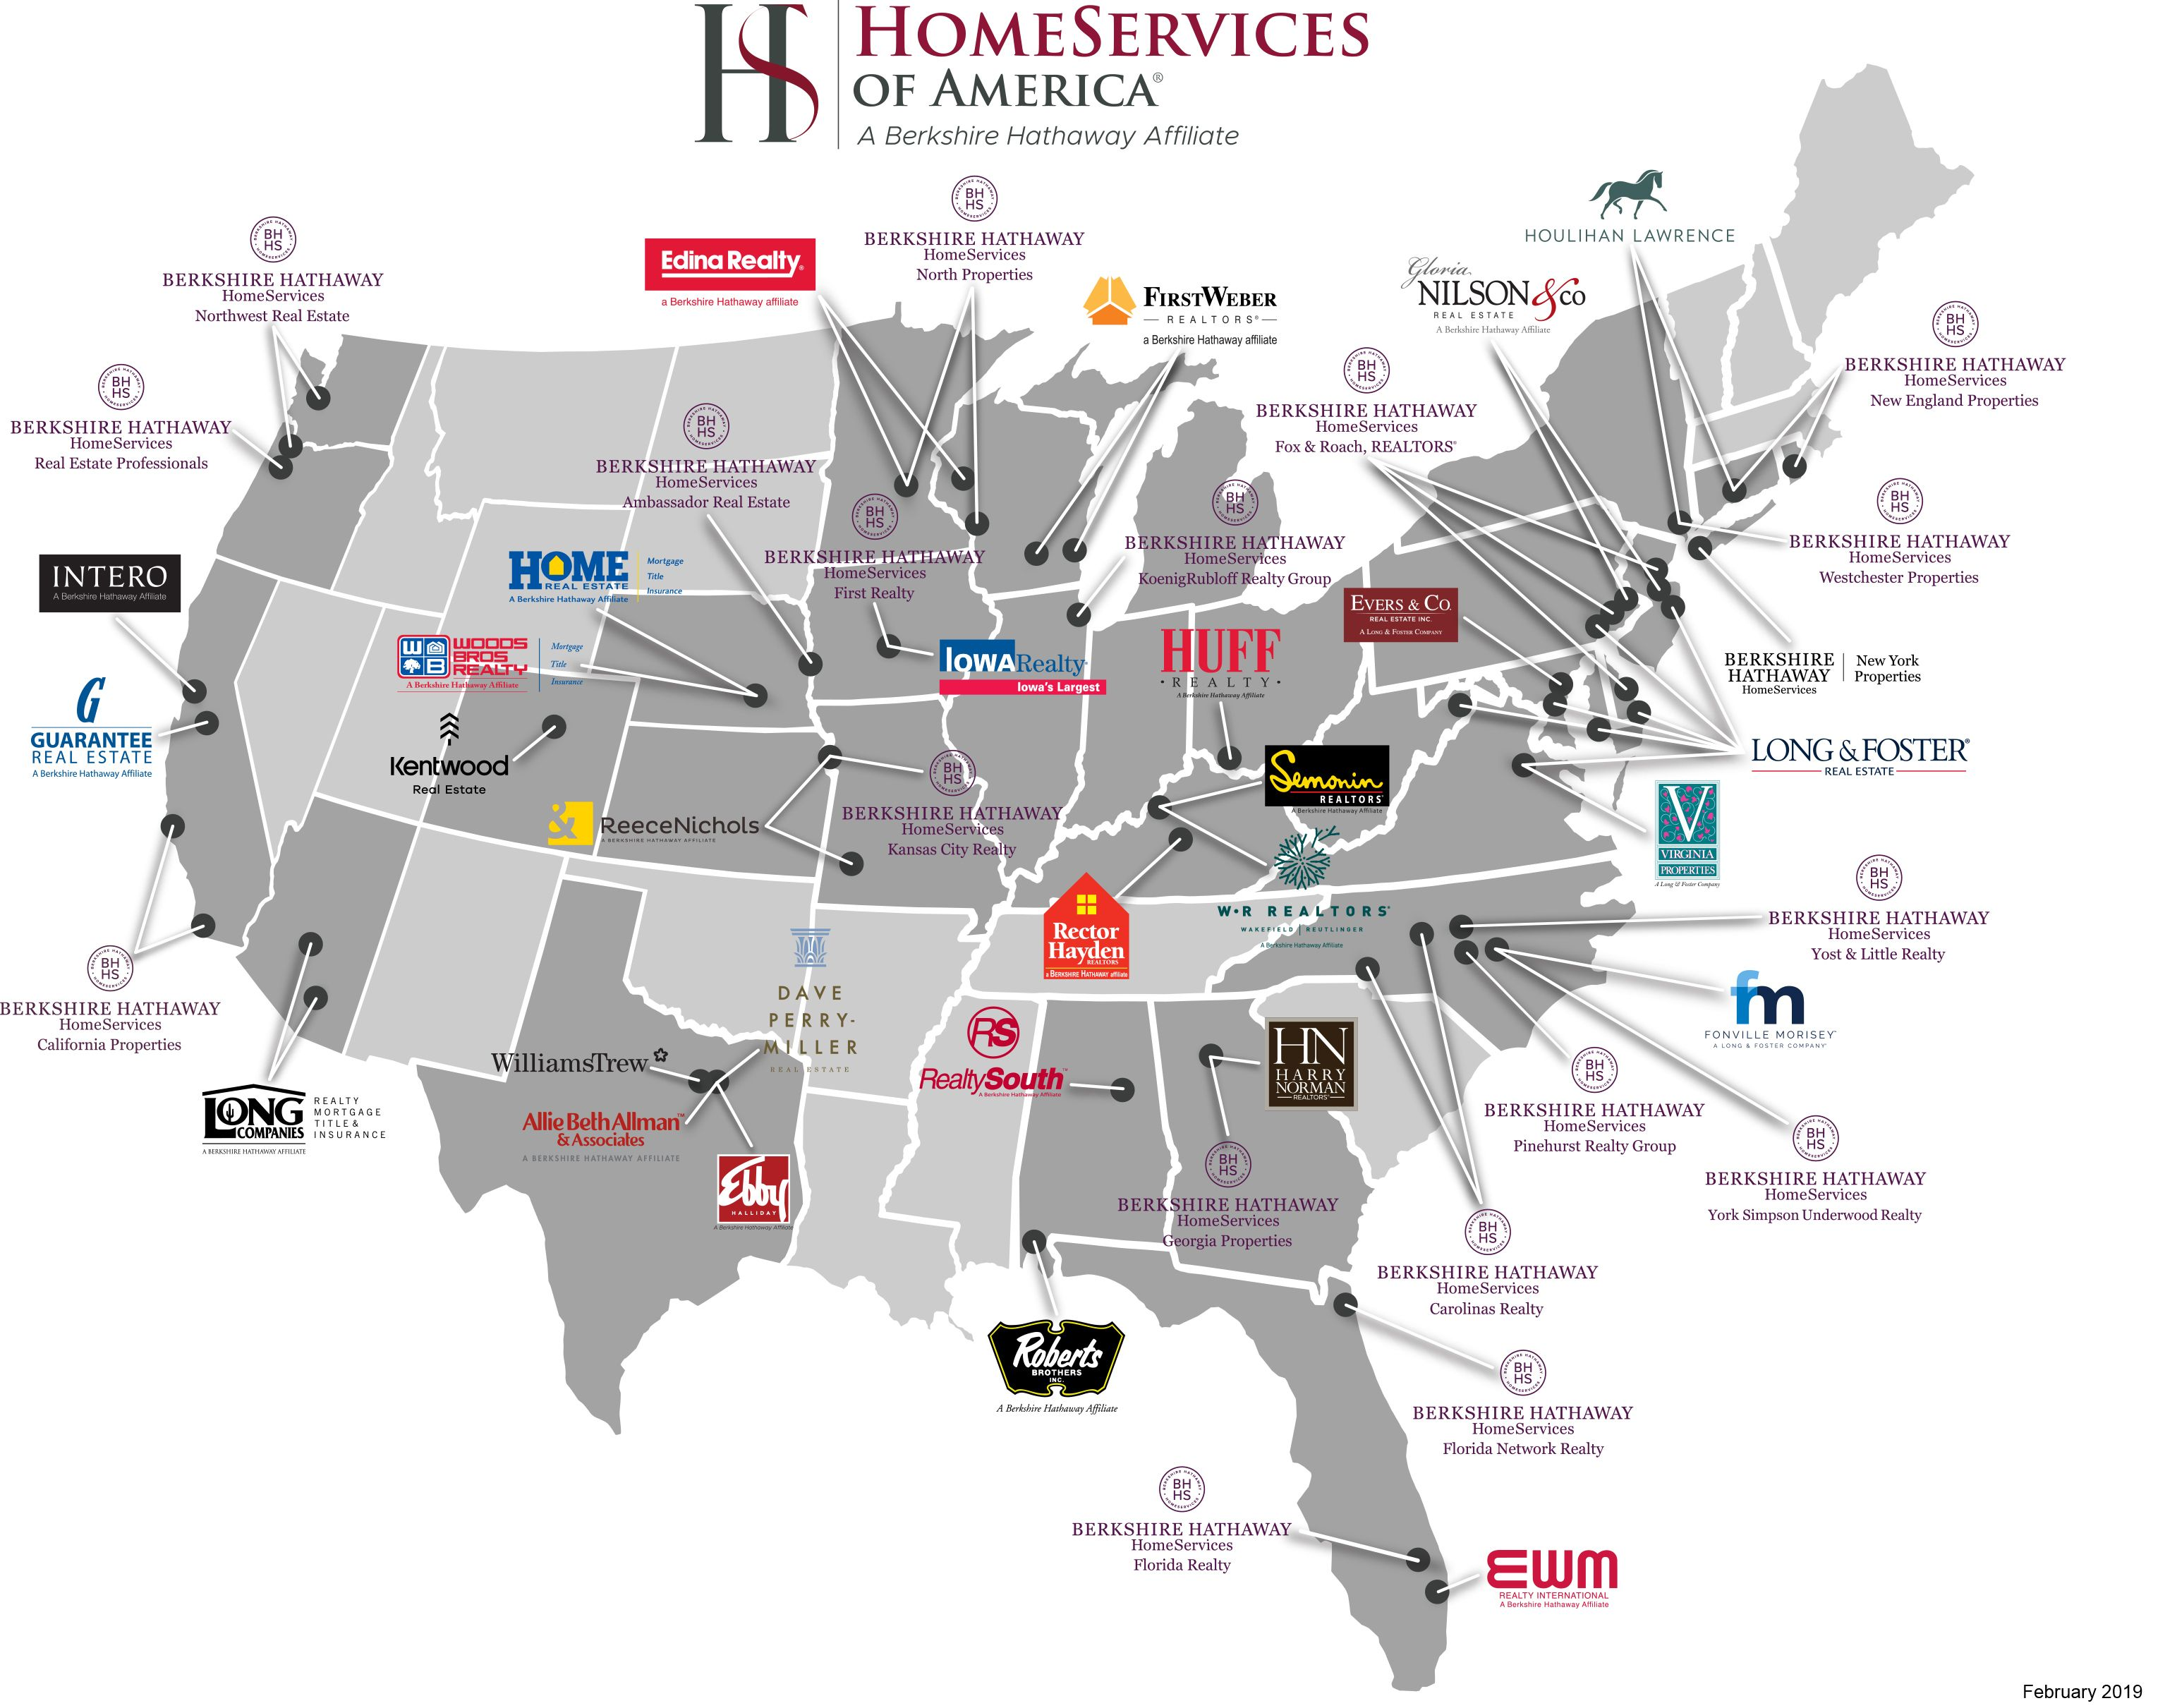 Homeservices Of America Is Now The Country S Largest Real Estate